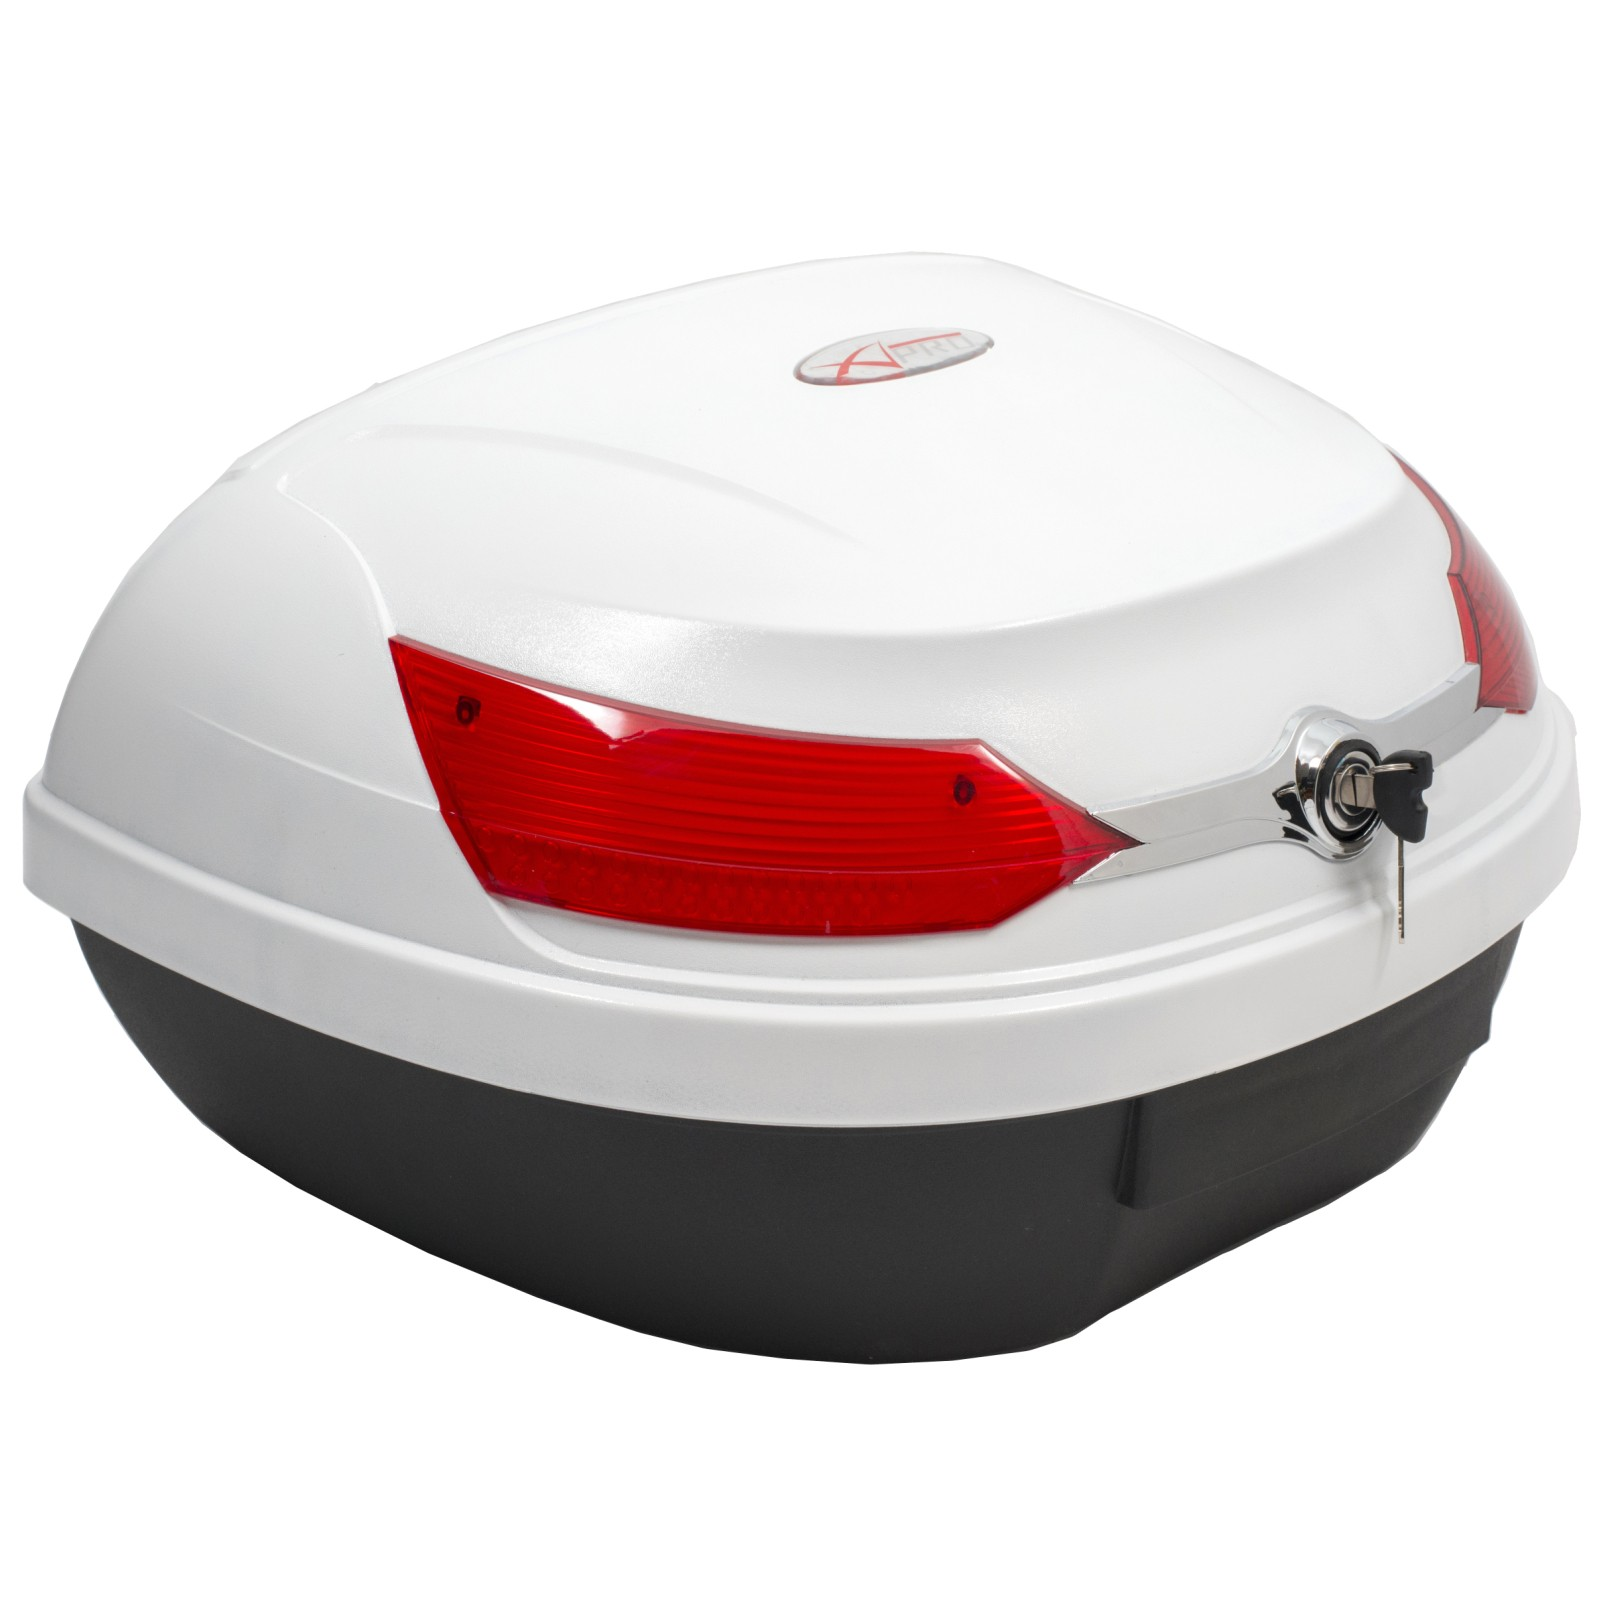 Top Case Box 46 LT Universal Quick Rlease Motorcycle Scooter Luggage White